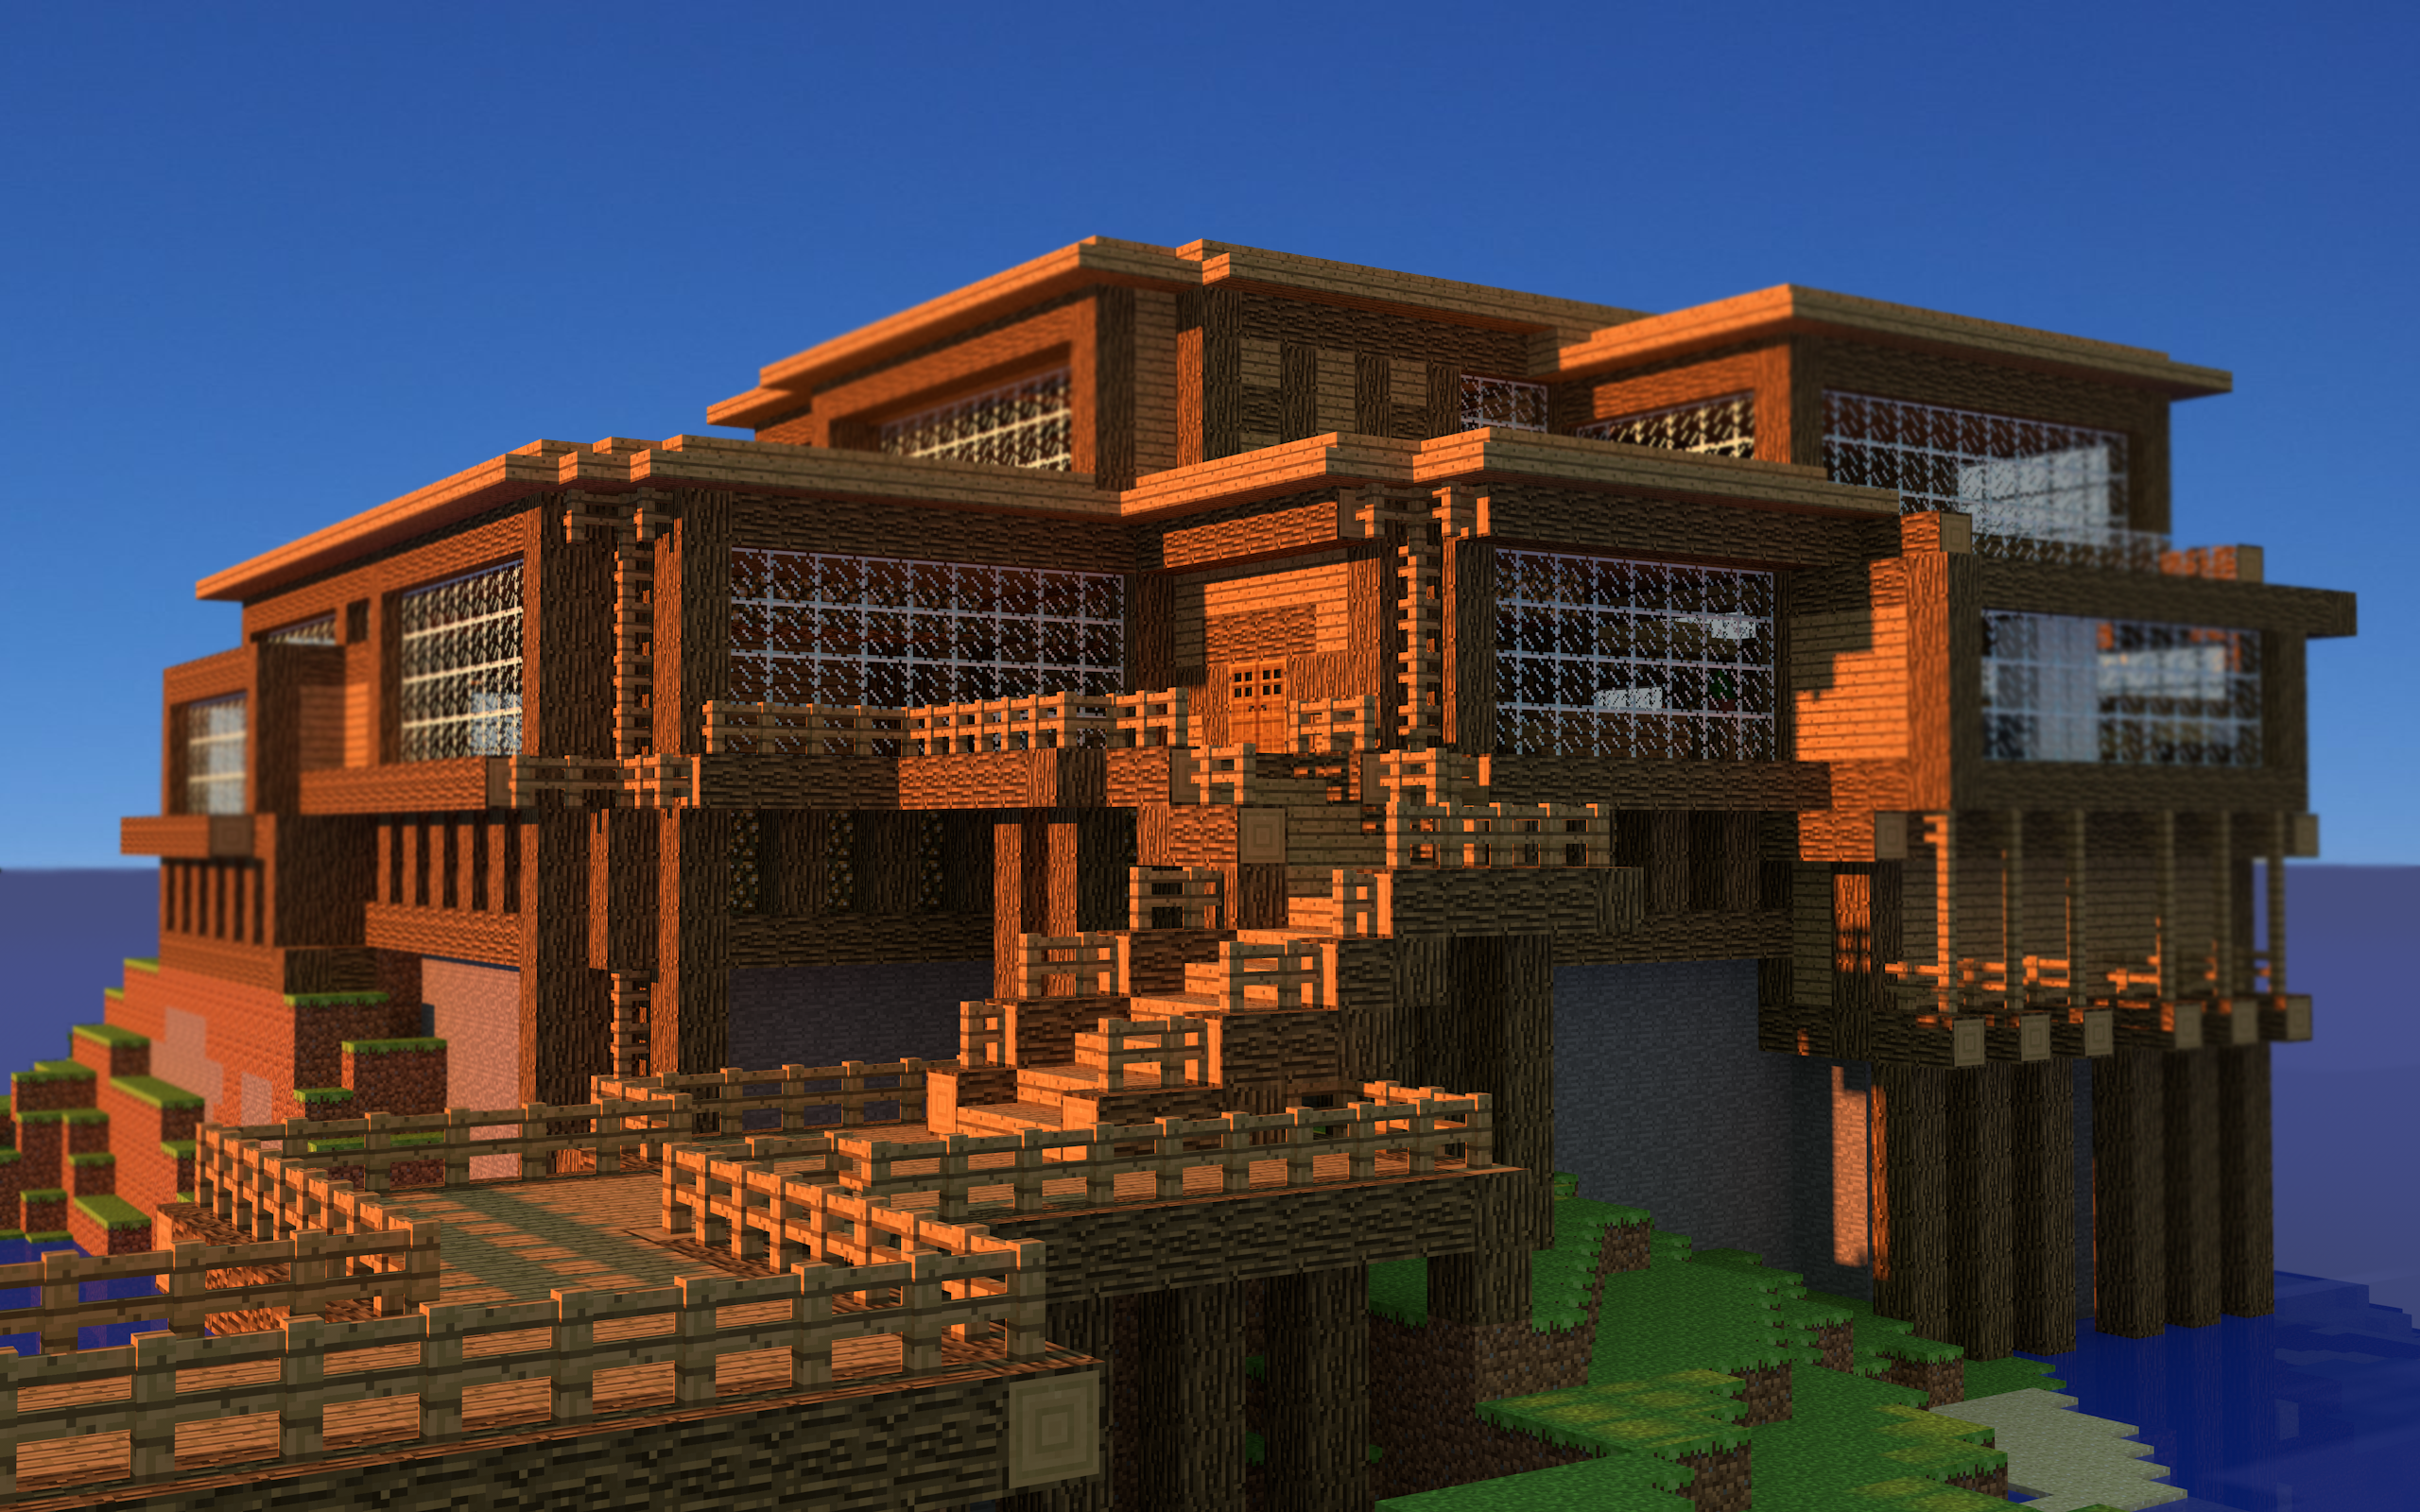 Minecraft Beach House Wallpaper 2560x1600